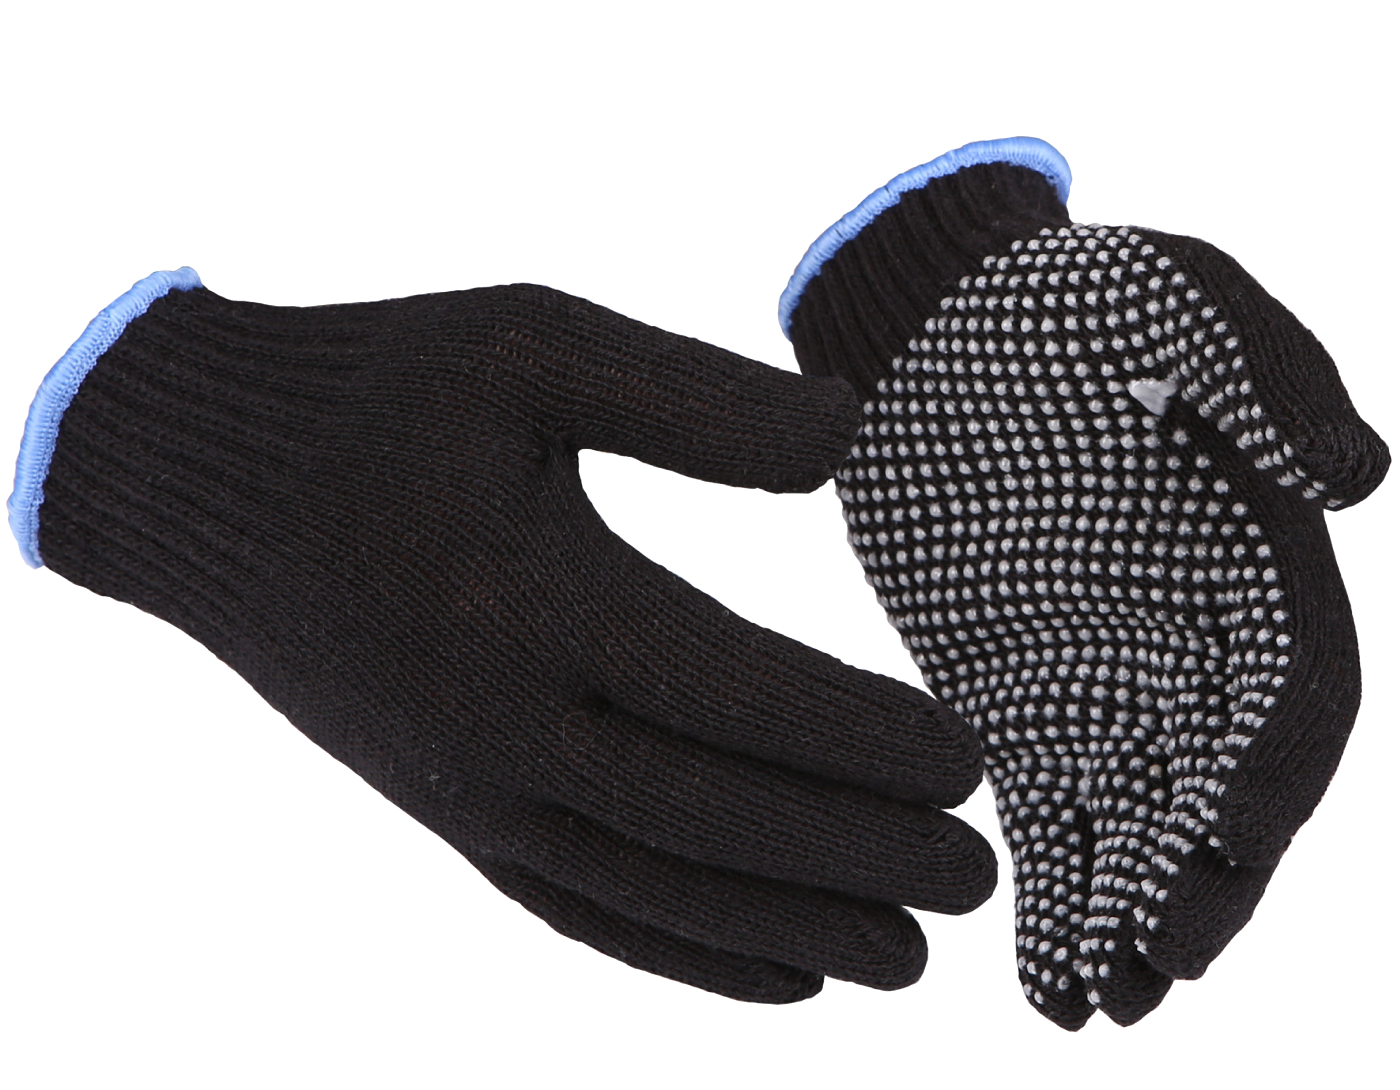 Thin Working Glove GUIDE 712